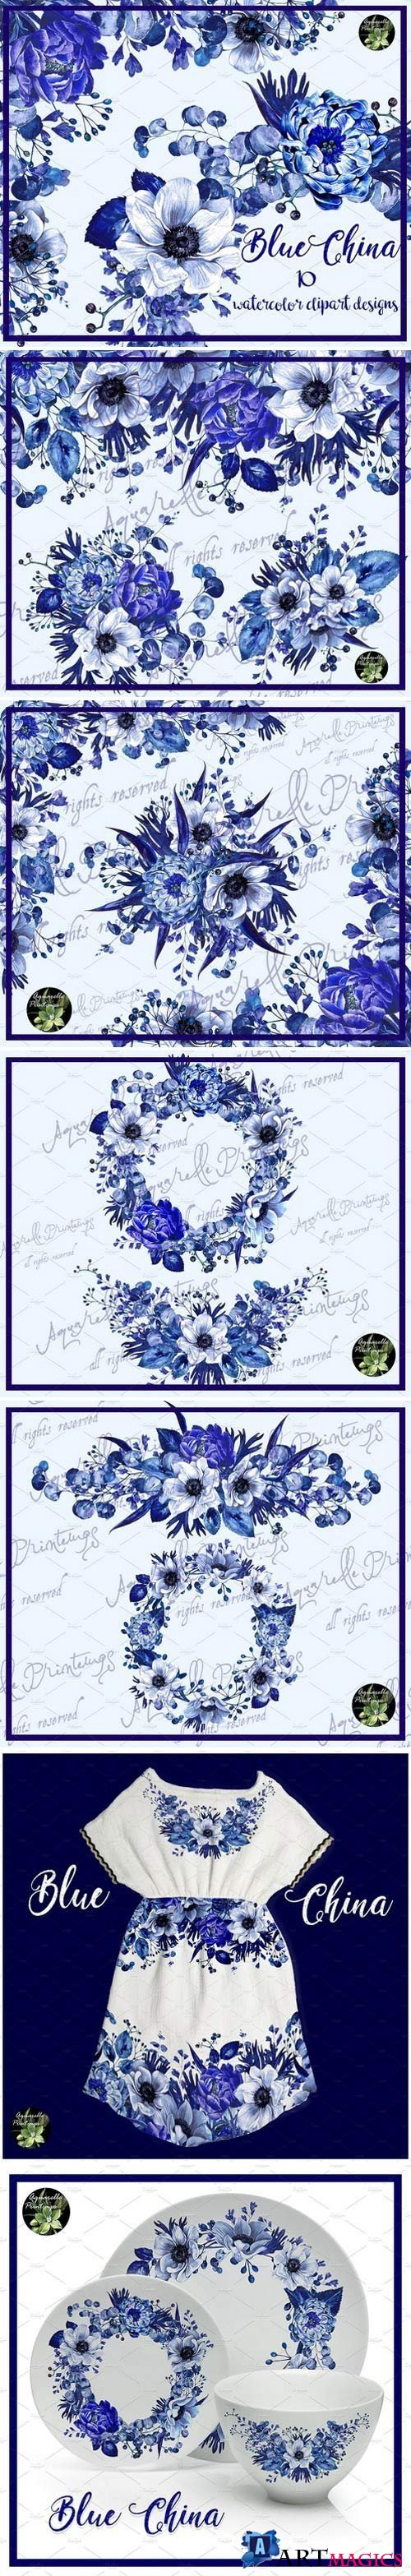 Blue China set 10 watercolor clipart 2232956